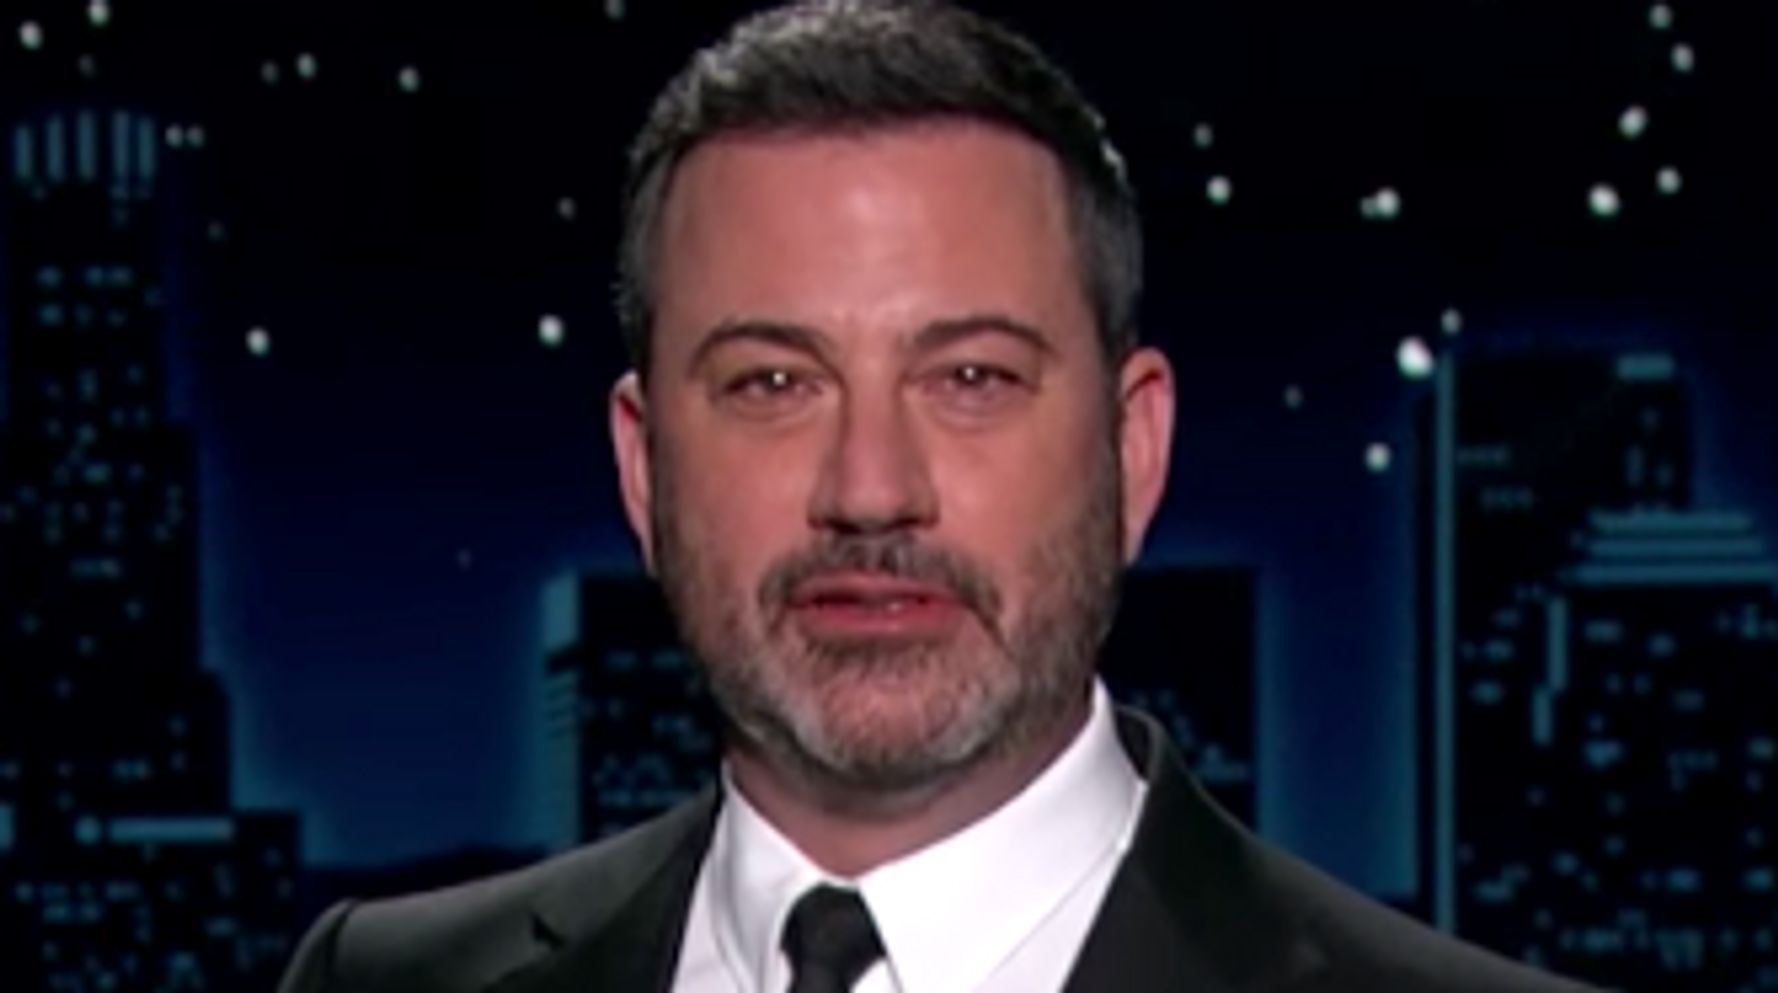 Jimmy Kimmel Finds A Fitting Running Mate For Donald Trump In 2024